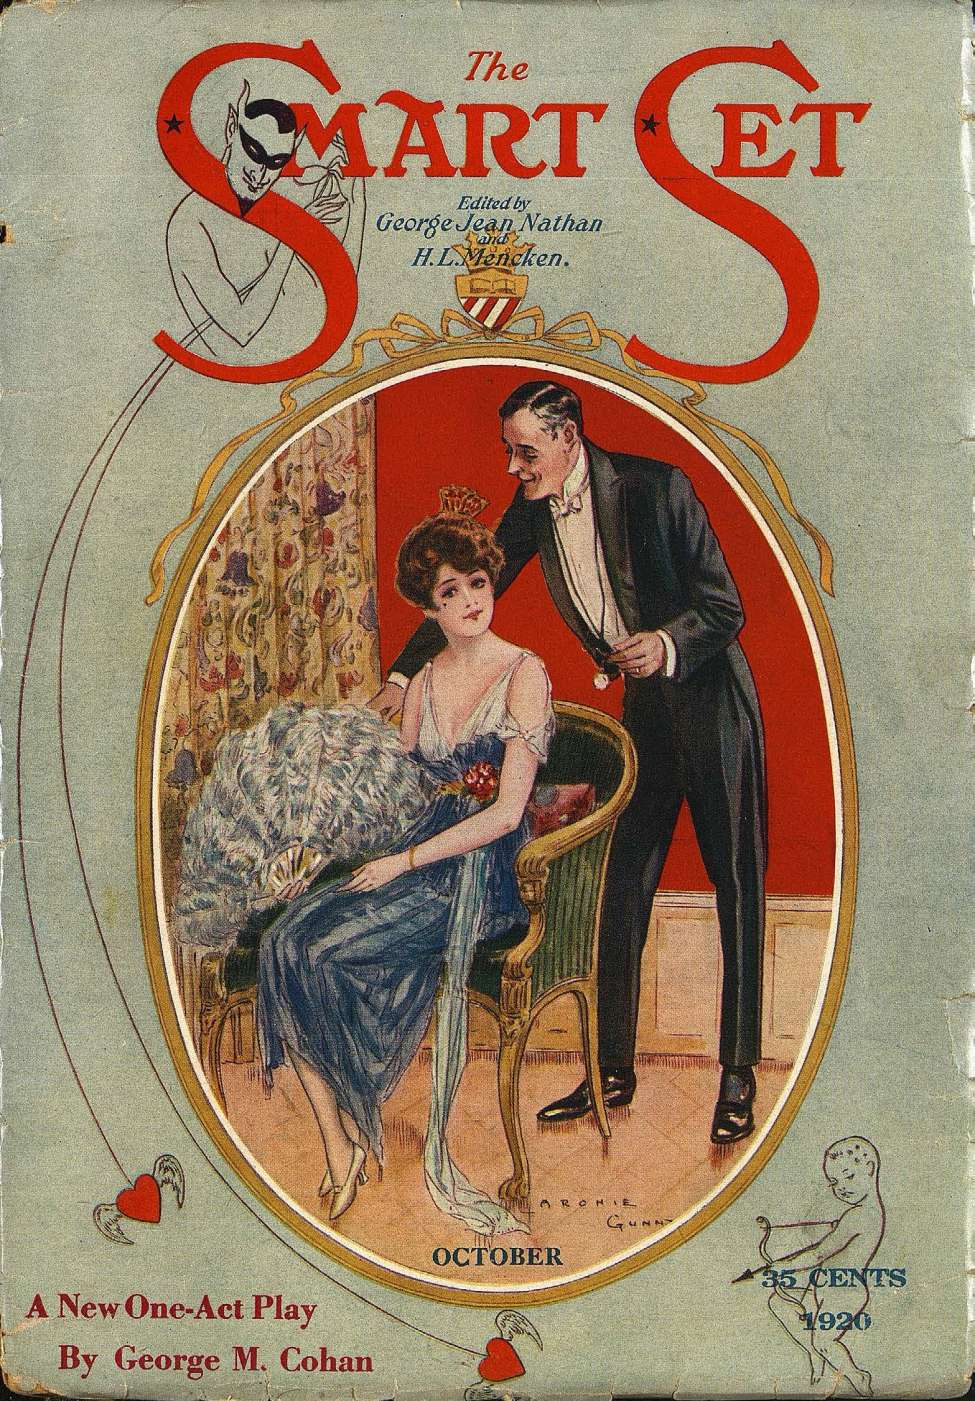 Comic Book Cover For The Smart Set v63 02